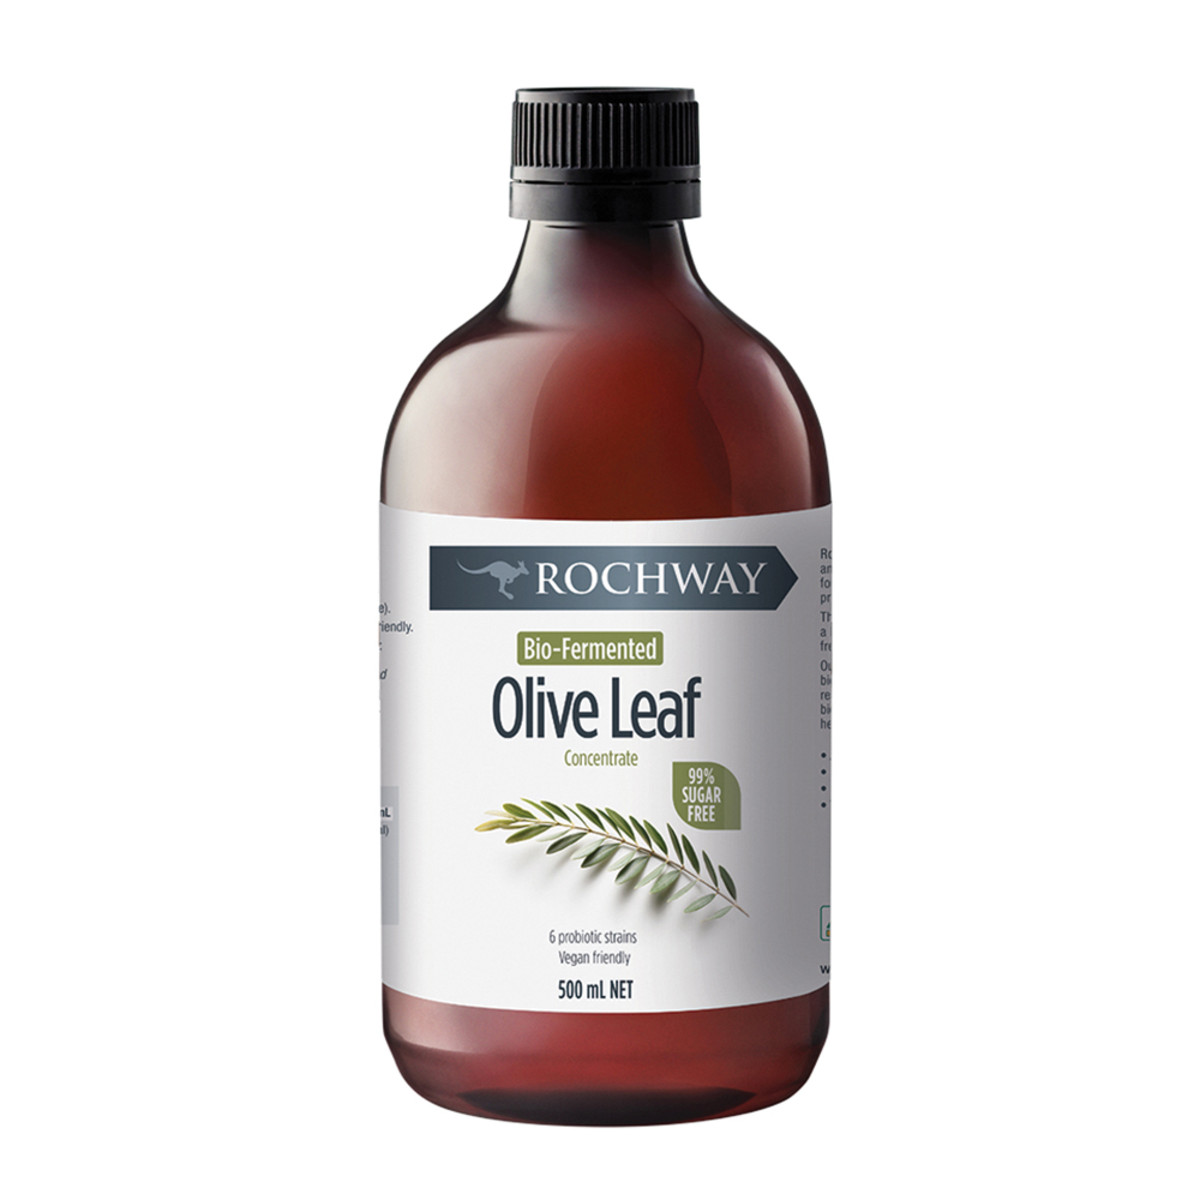 Rochway BioFermented Concentrate Olive Leaf 500ml_media-01